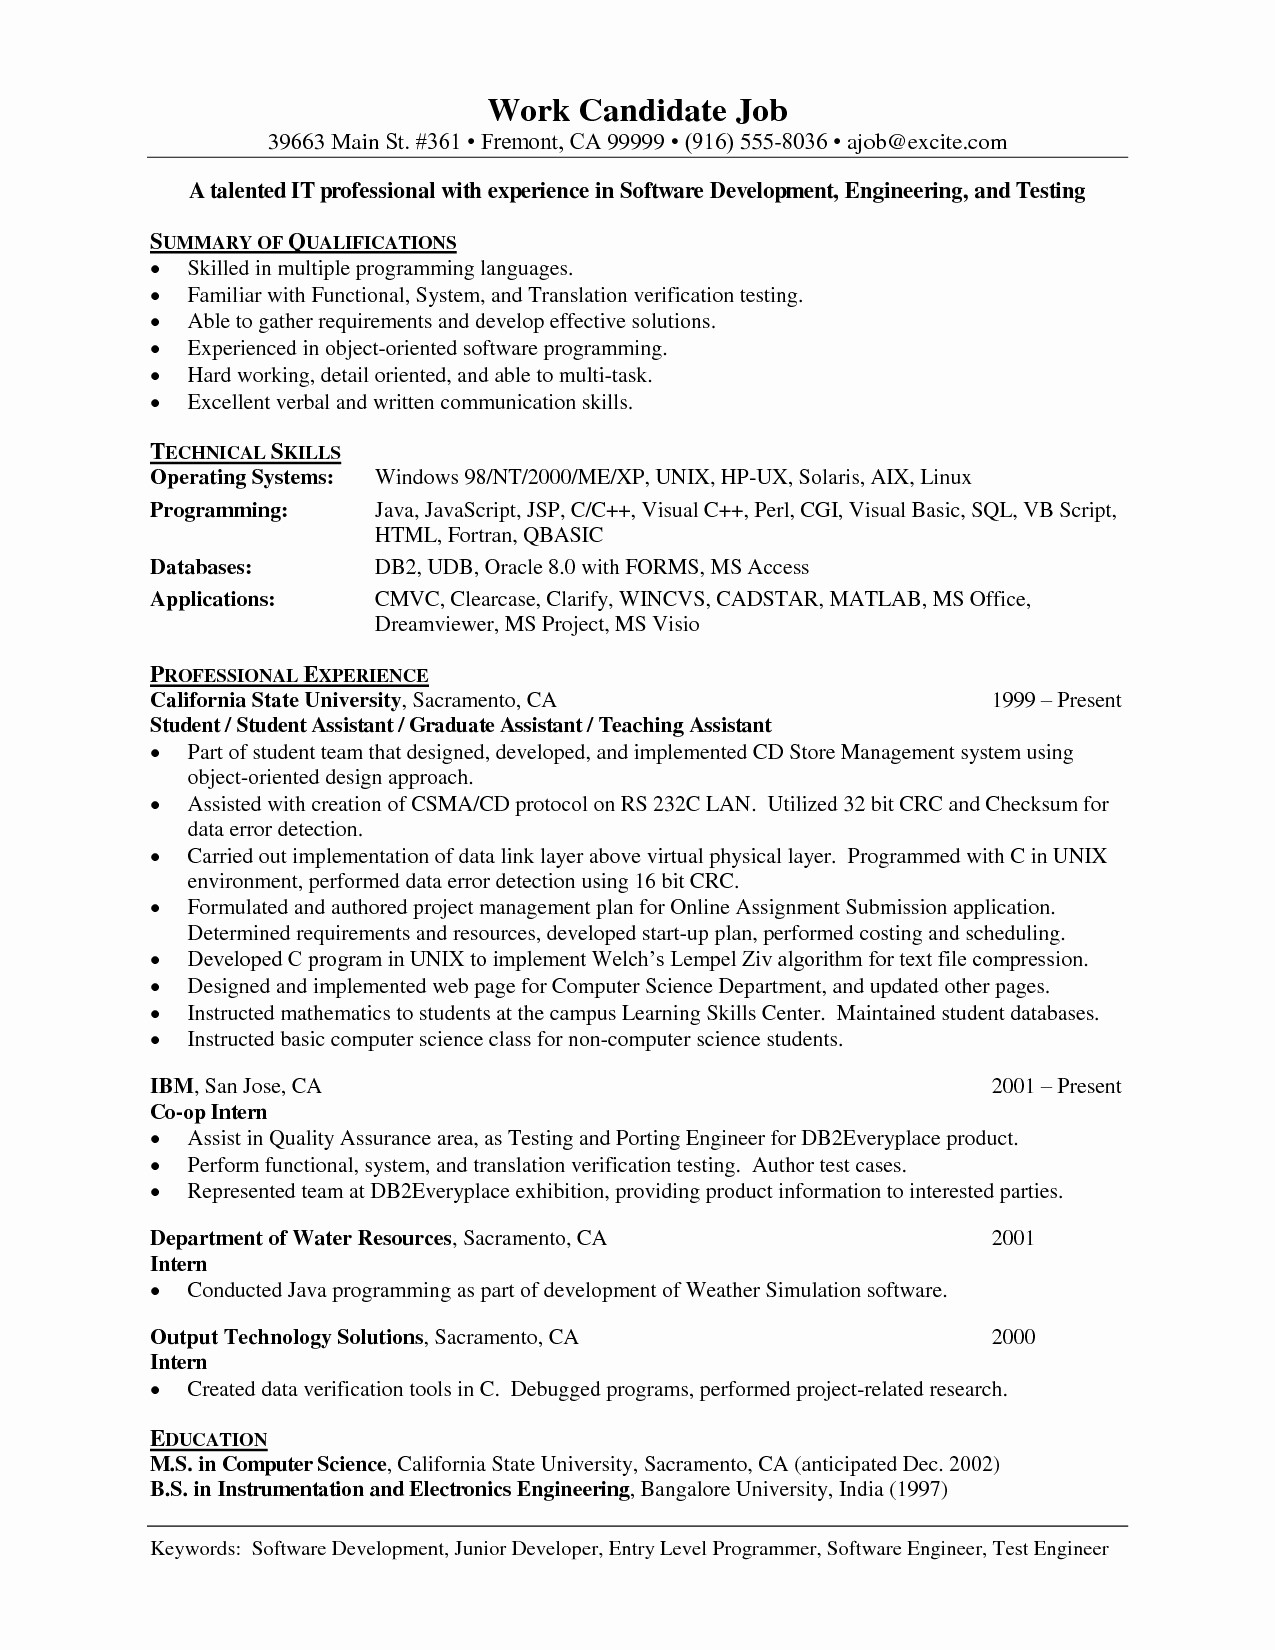 Entry Level Information Technology Resume with No Experience - Entry Level Information Technology Resume with No Experience